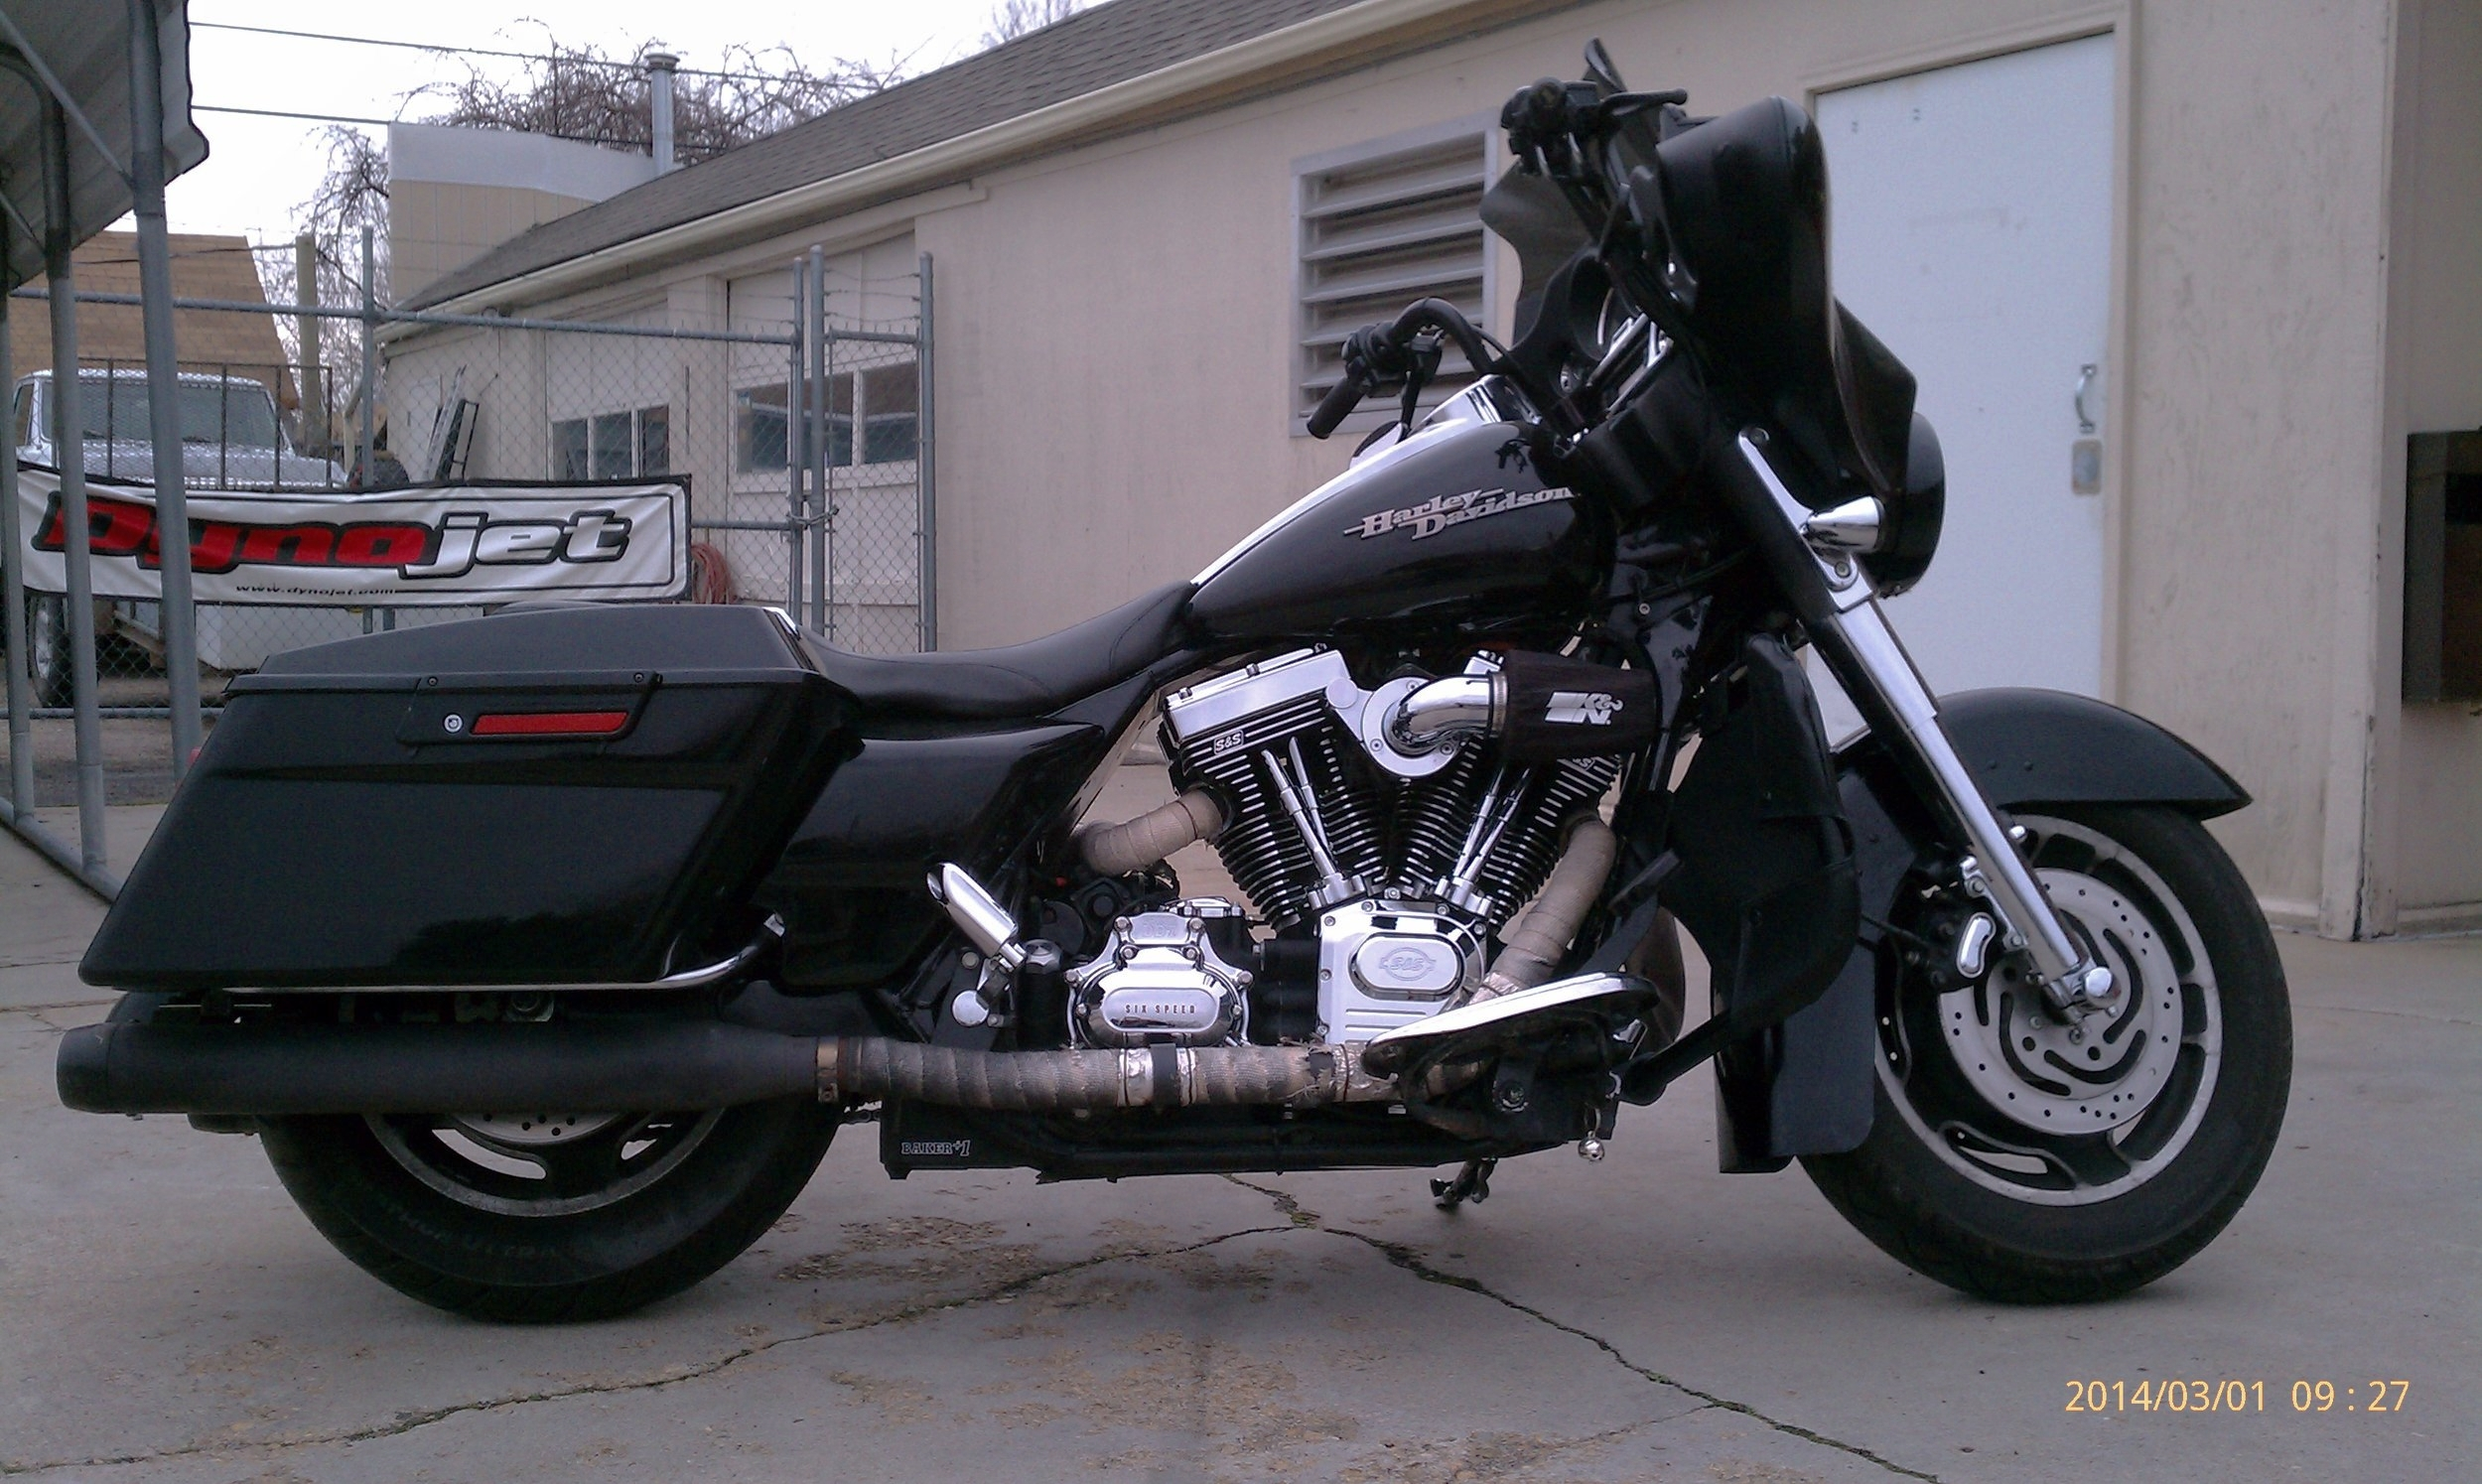 2007 HARLEY DAVIDSON FLHX WITH SS 111 MOTOR AND A BAKER 7 SPEED TRANSMISSION...YUP.  WE SAID SEVEN SPEED.